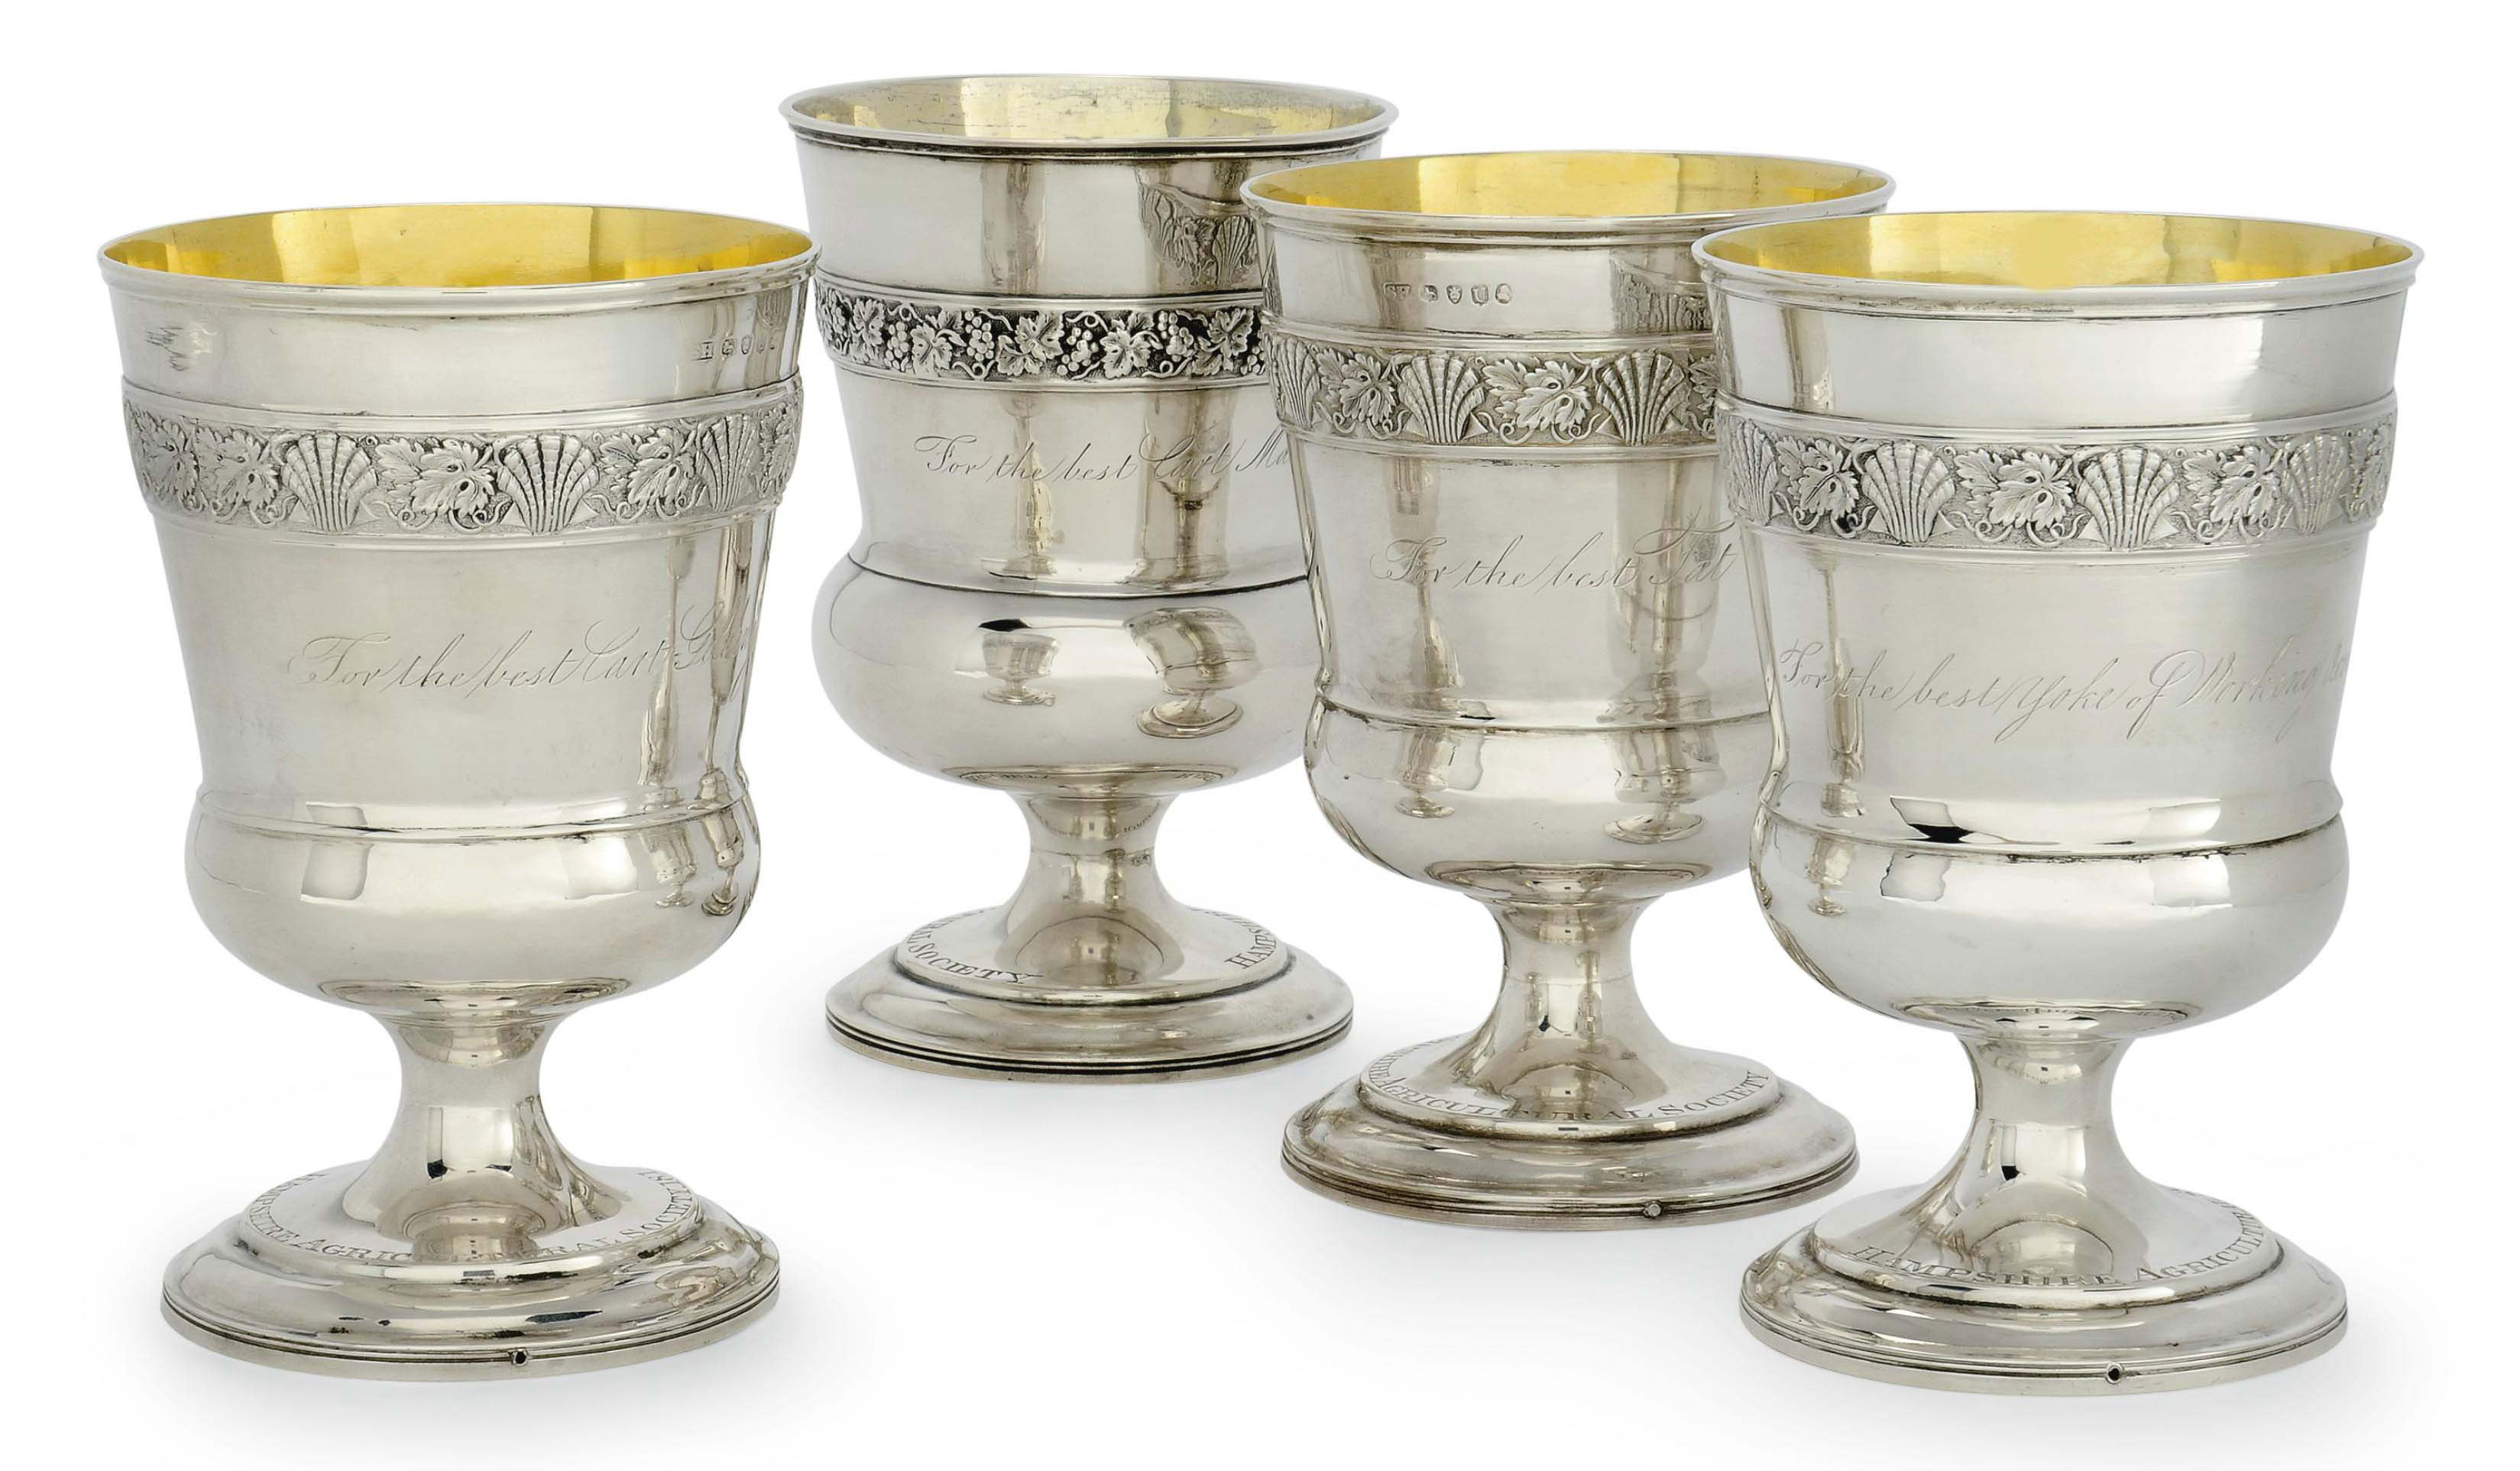 A MATCHED SET OF FOUR GEORGE III SILVER GOBLETS OF AGRICULTURAL INTEREST